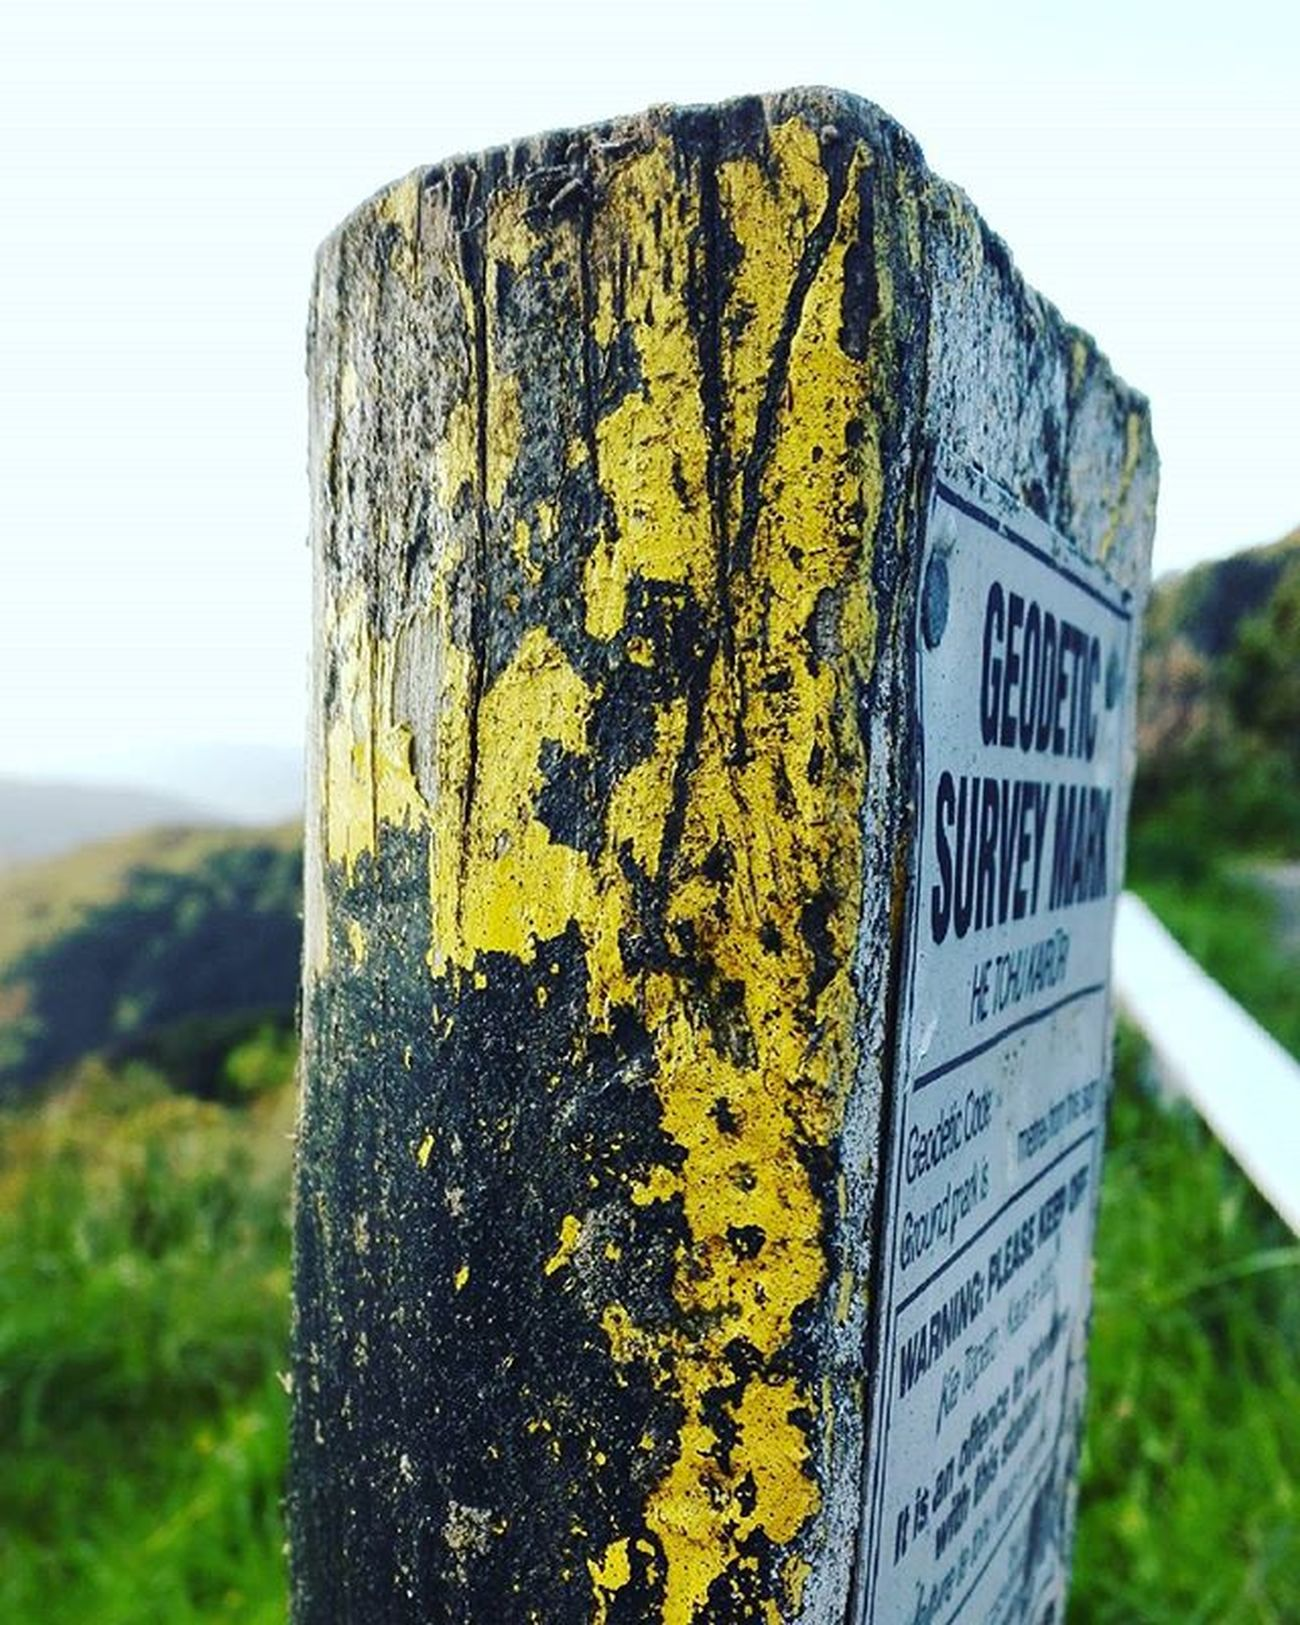 Texture Yellow Paint Post Rimutakacrossing Rimutaka Aotearoa NZ Wood Newzealand Wellington  Randomtrip 9Vaga_ColorYellow9 Wooden_hue Wooden_hue_yg Tv_typography Ig_4every1_yellow